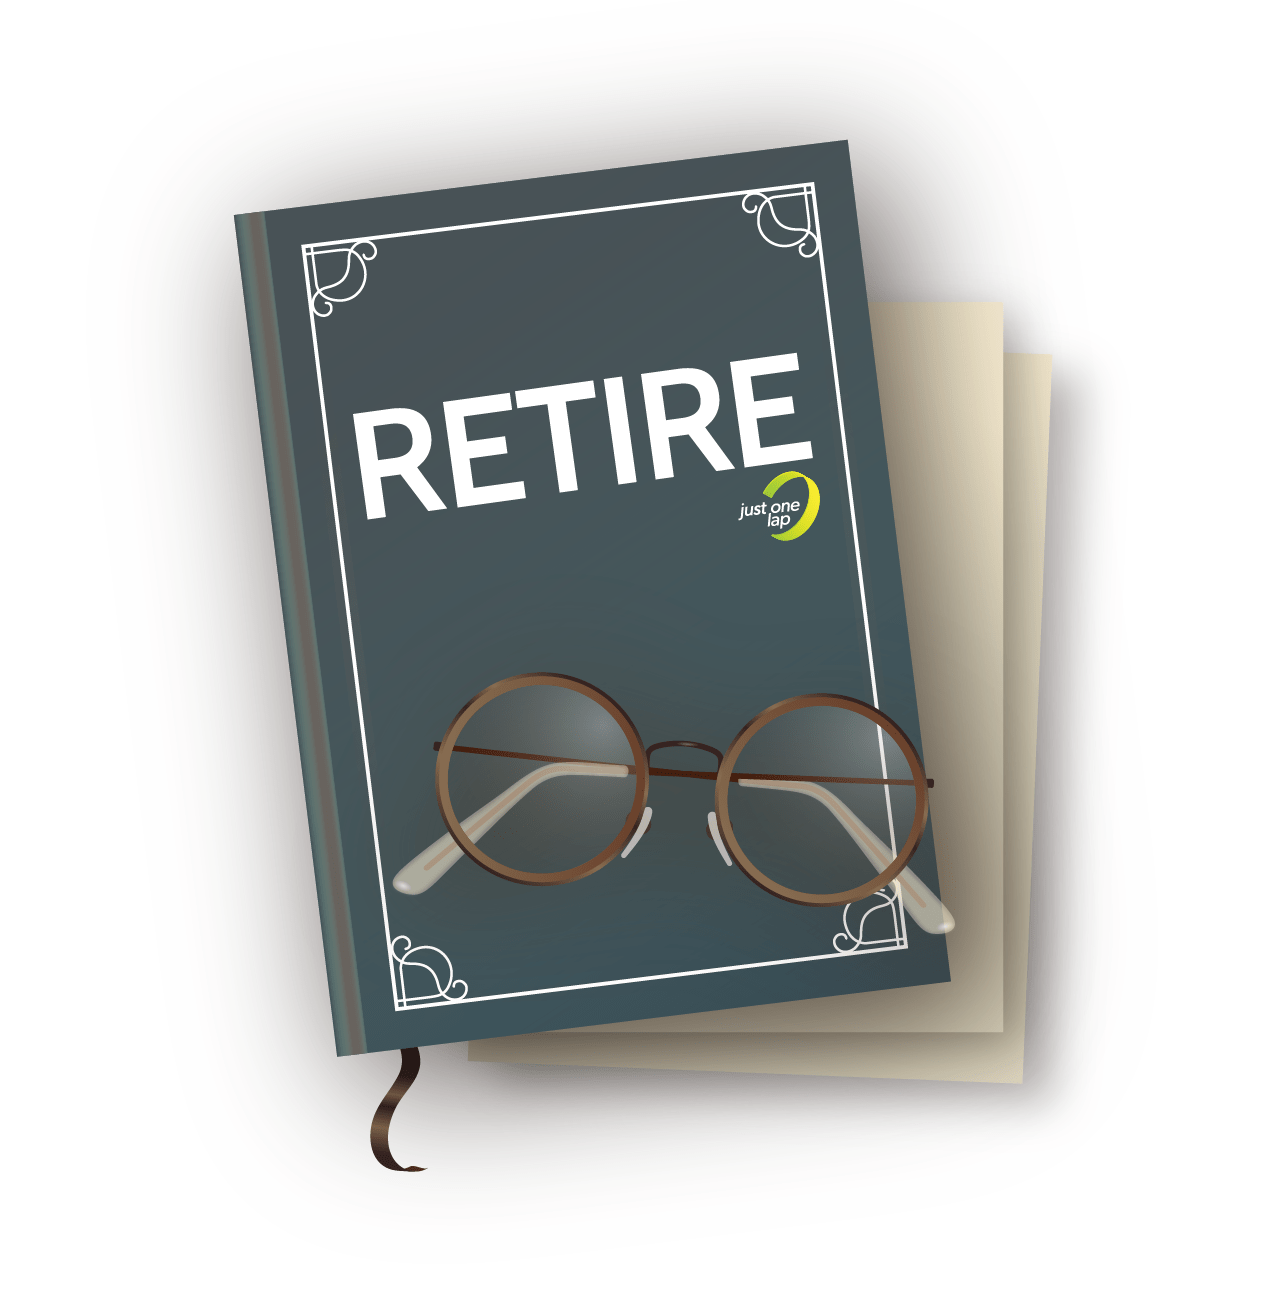 Retire: Tax on lump sums